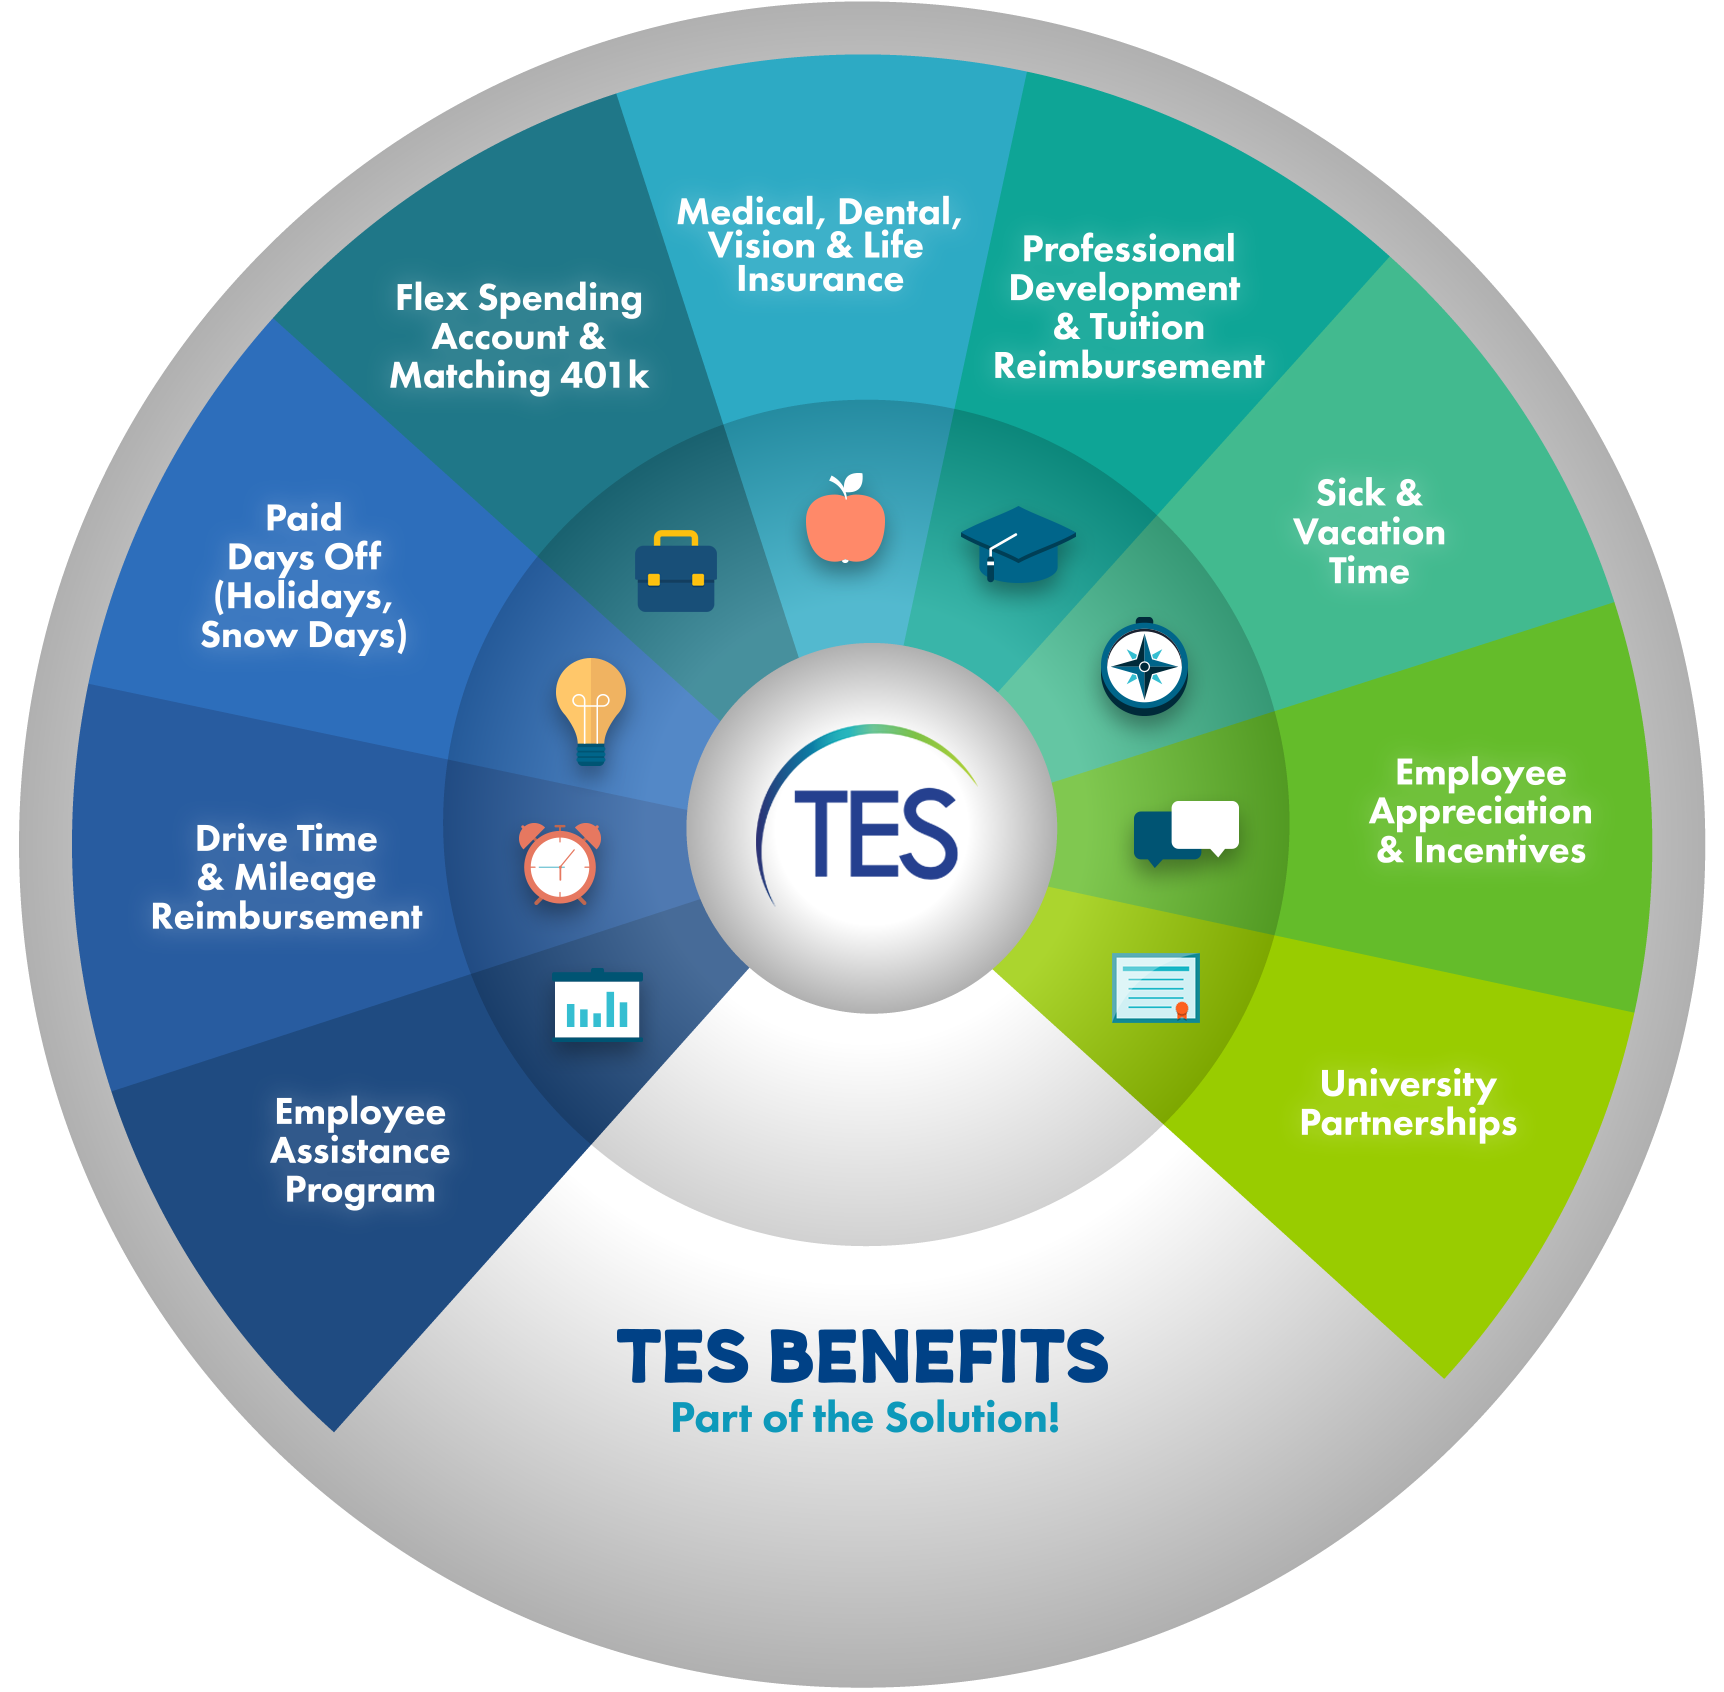 TES Benefits and Opportunities